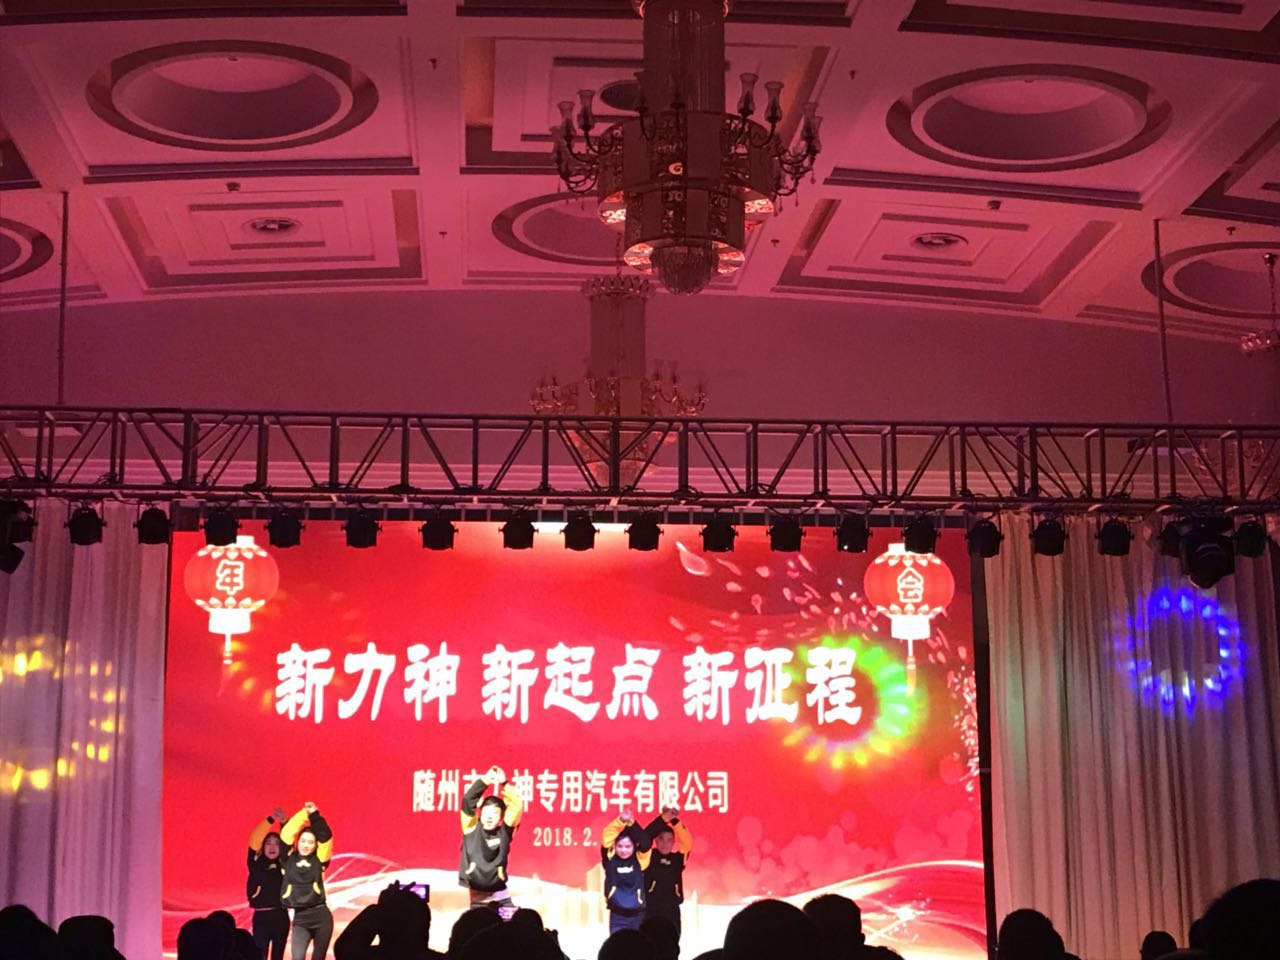 suizhou lishen special vehicle Suizhou lishen vehicle company annual meeting